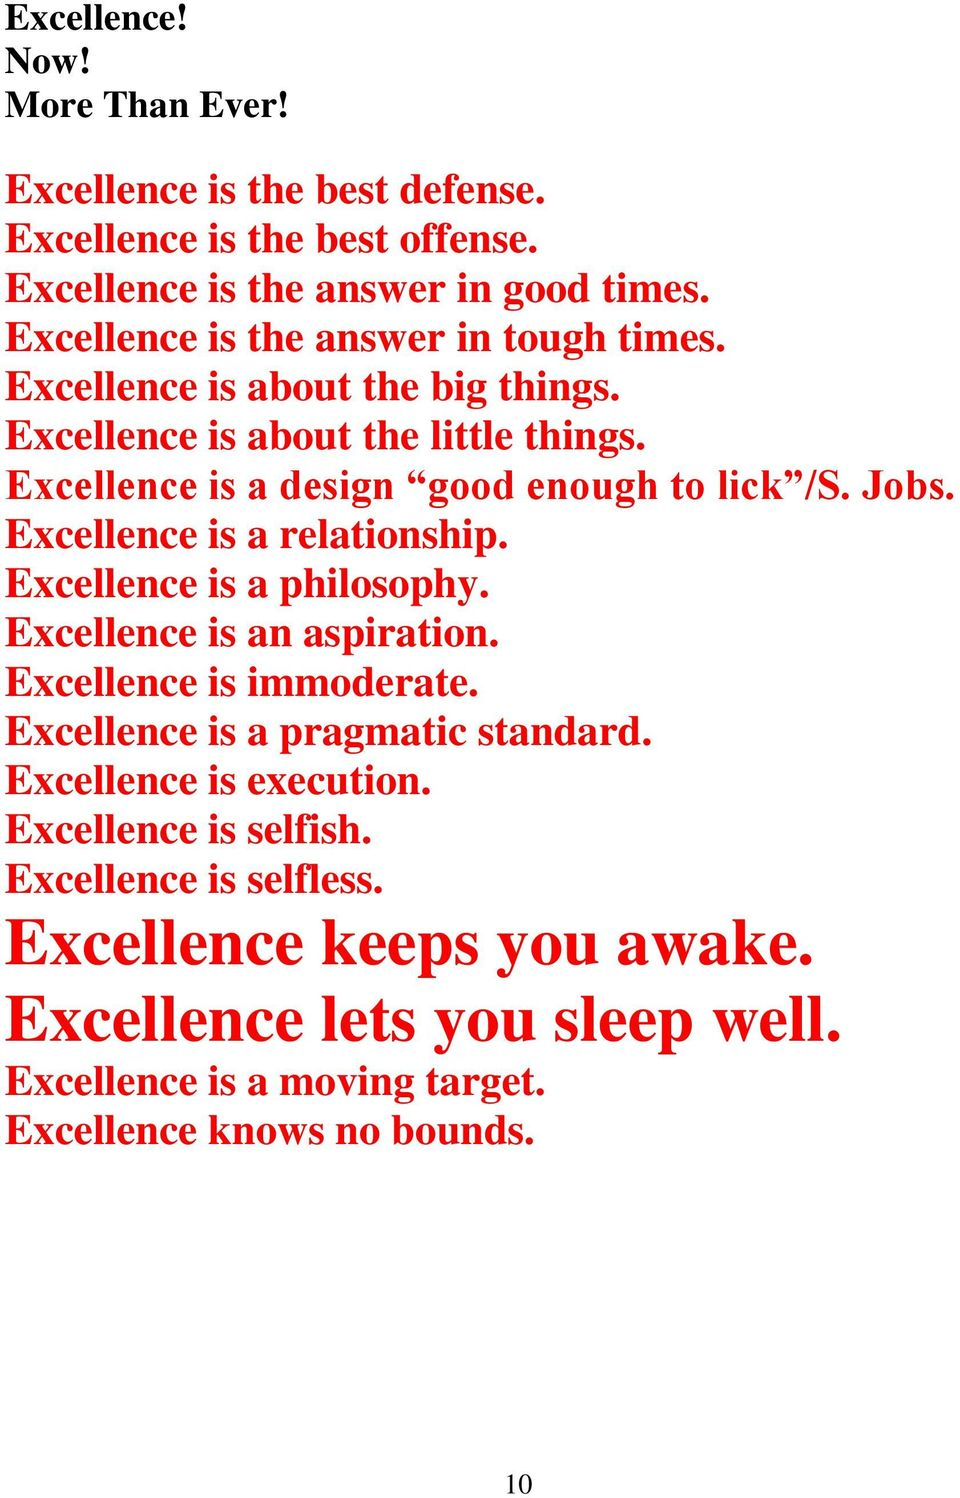 Jobs. Excellence is a relationship. Excellence is a philosophy. Excellence is an aspiration. Excellence is immoderate. Excellence is a pragmatic standard.